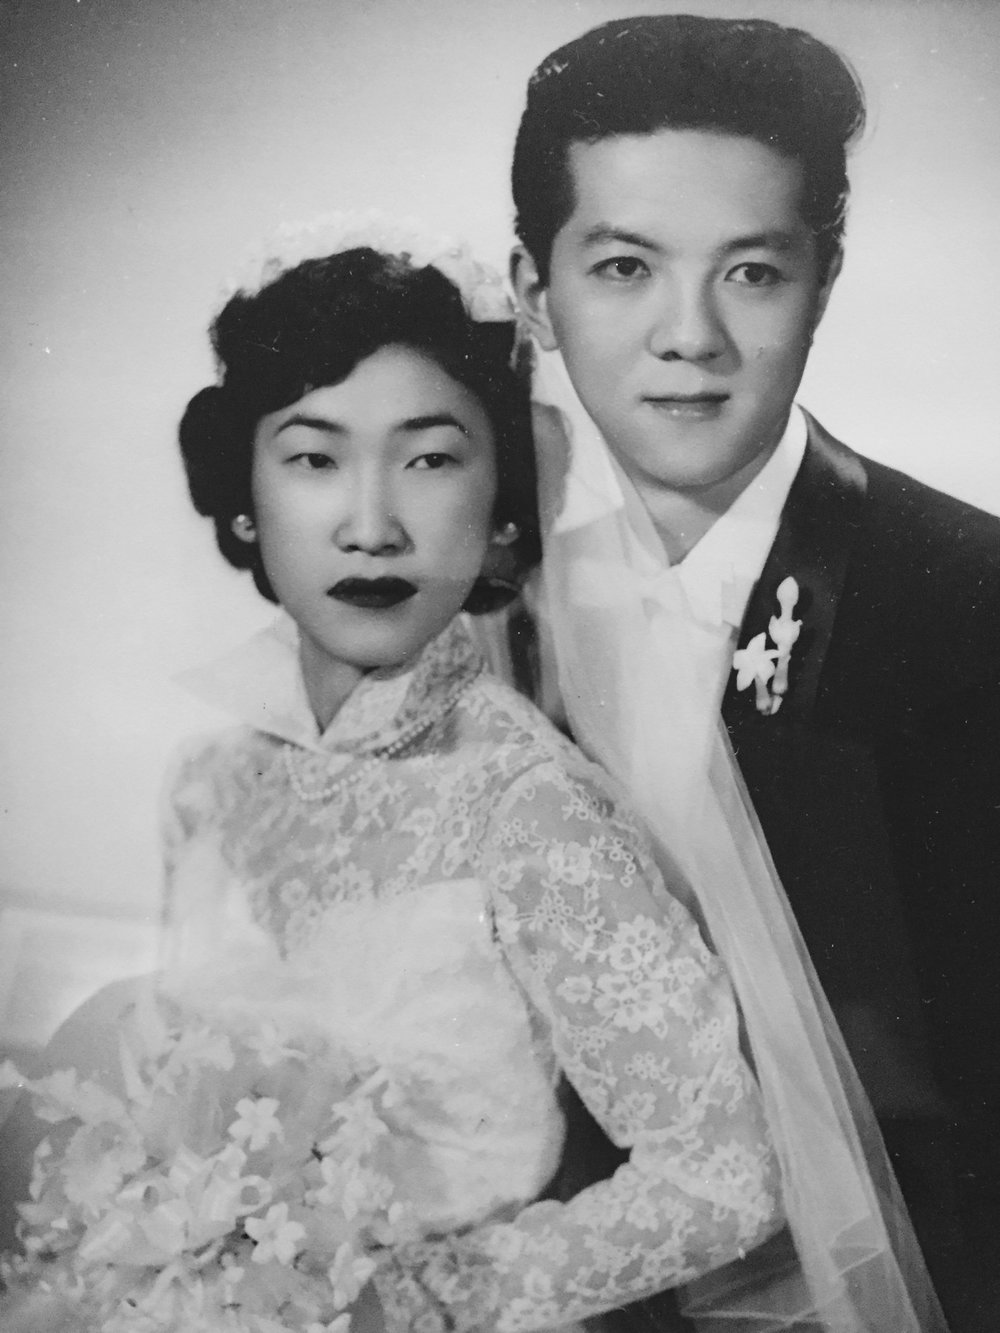 Betty and Art on their wedding day